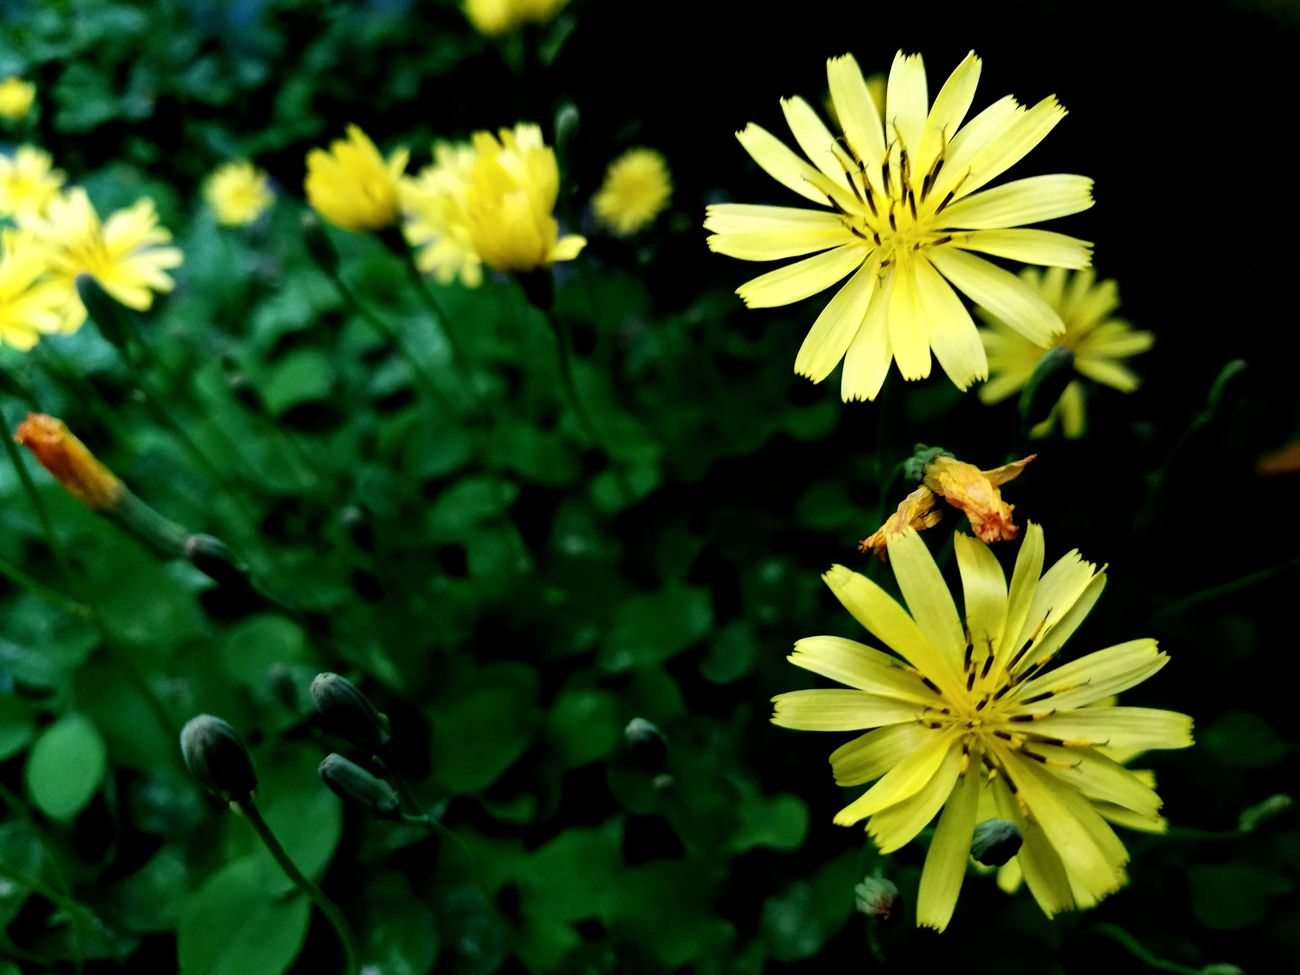 Flower Yellow Plant Nature Green Color Beauty In Nature Leaf Flower Head Botany Fragility Day Outdoors Summer Plant Part Growth Freshness Multi Colored Outdoor Pursuit Petal Alternative Medicine